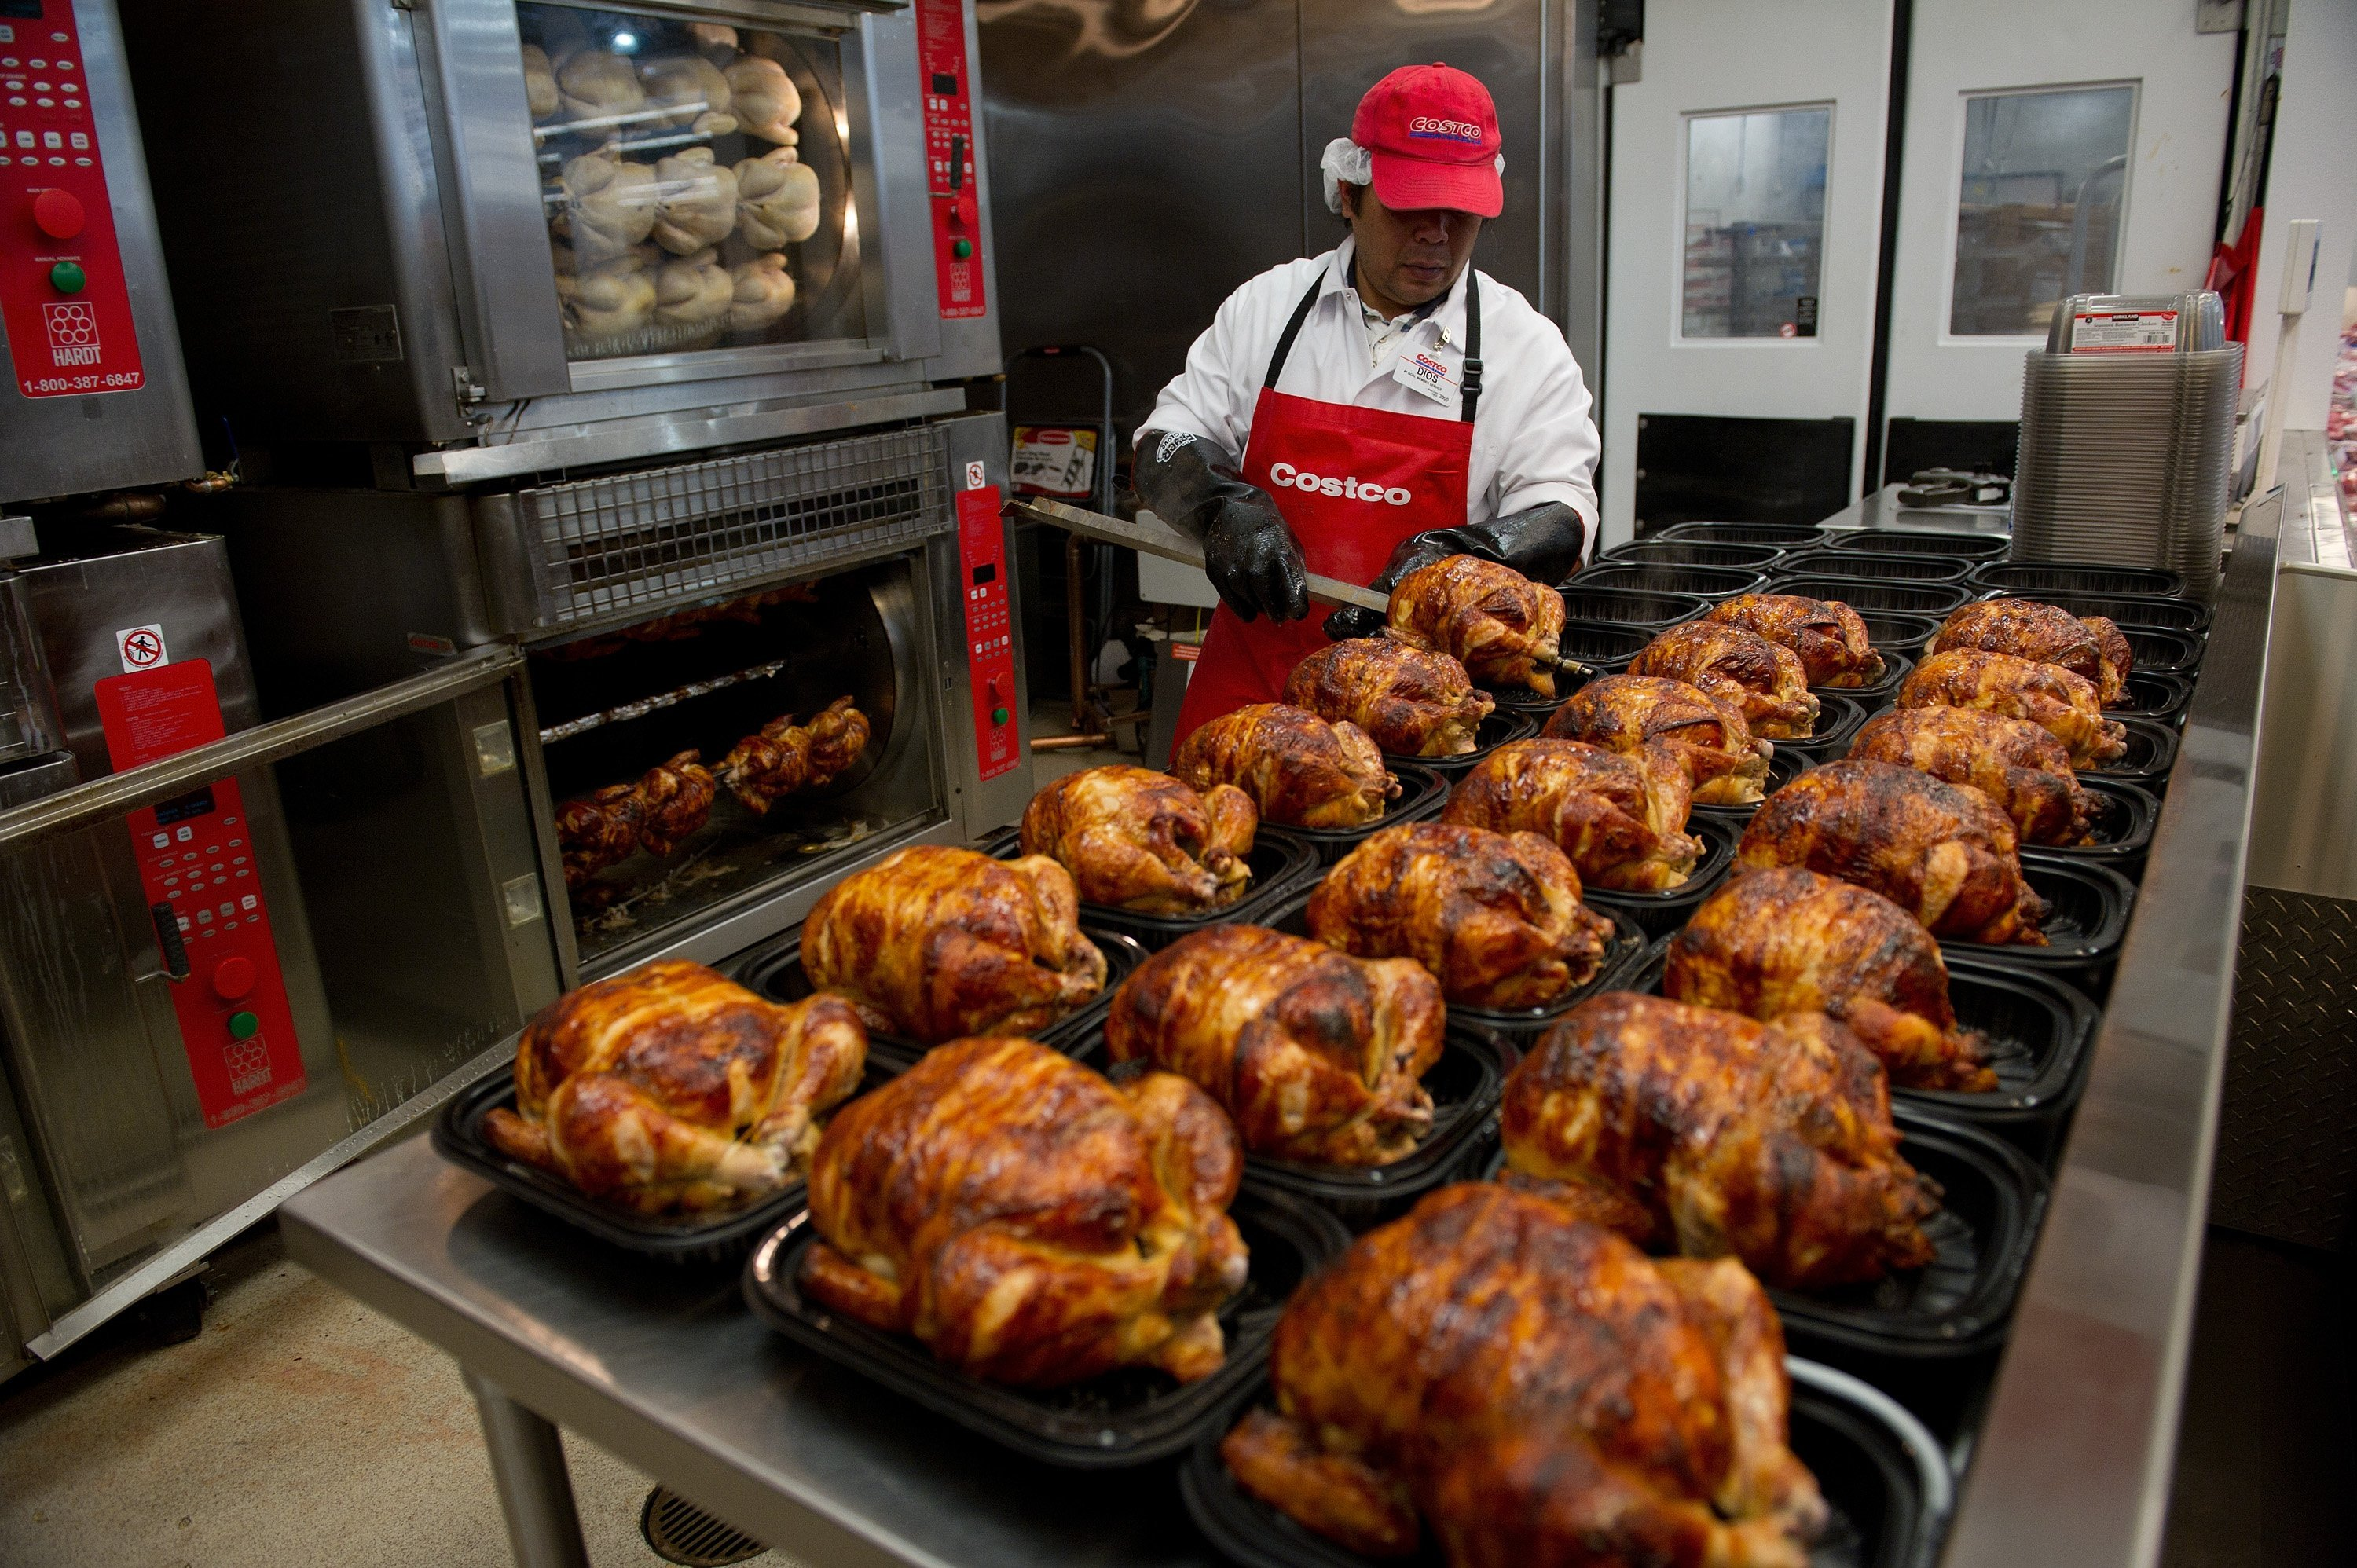 Five things to know about Costco's $4.99 rotisserie chickens